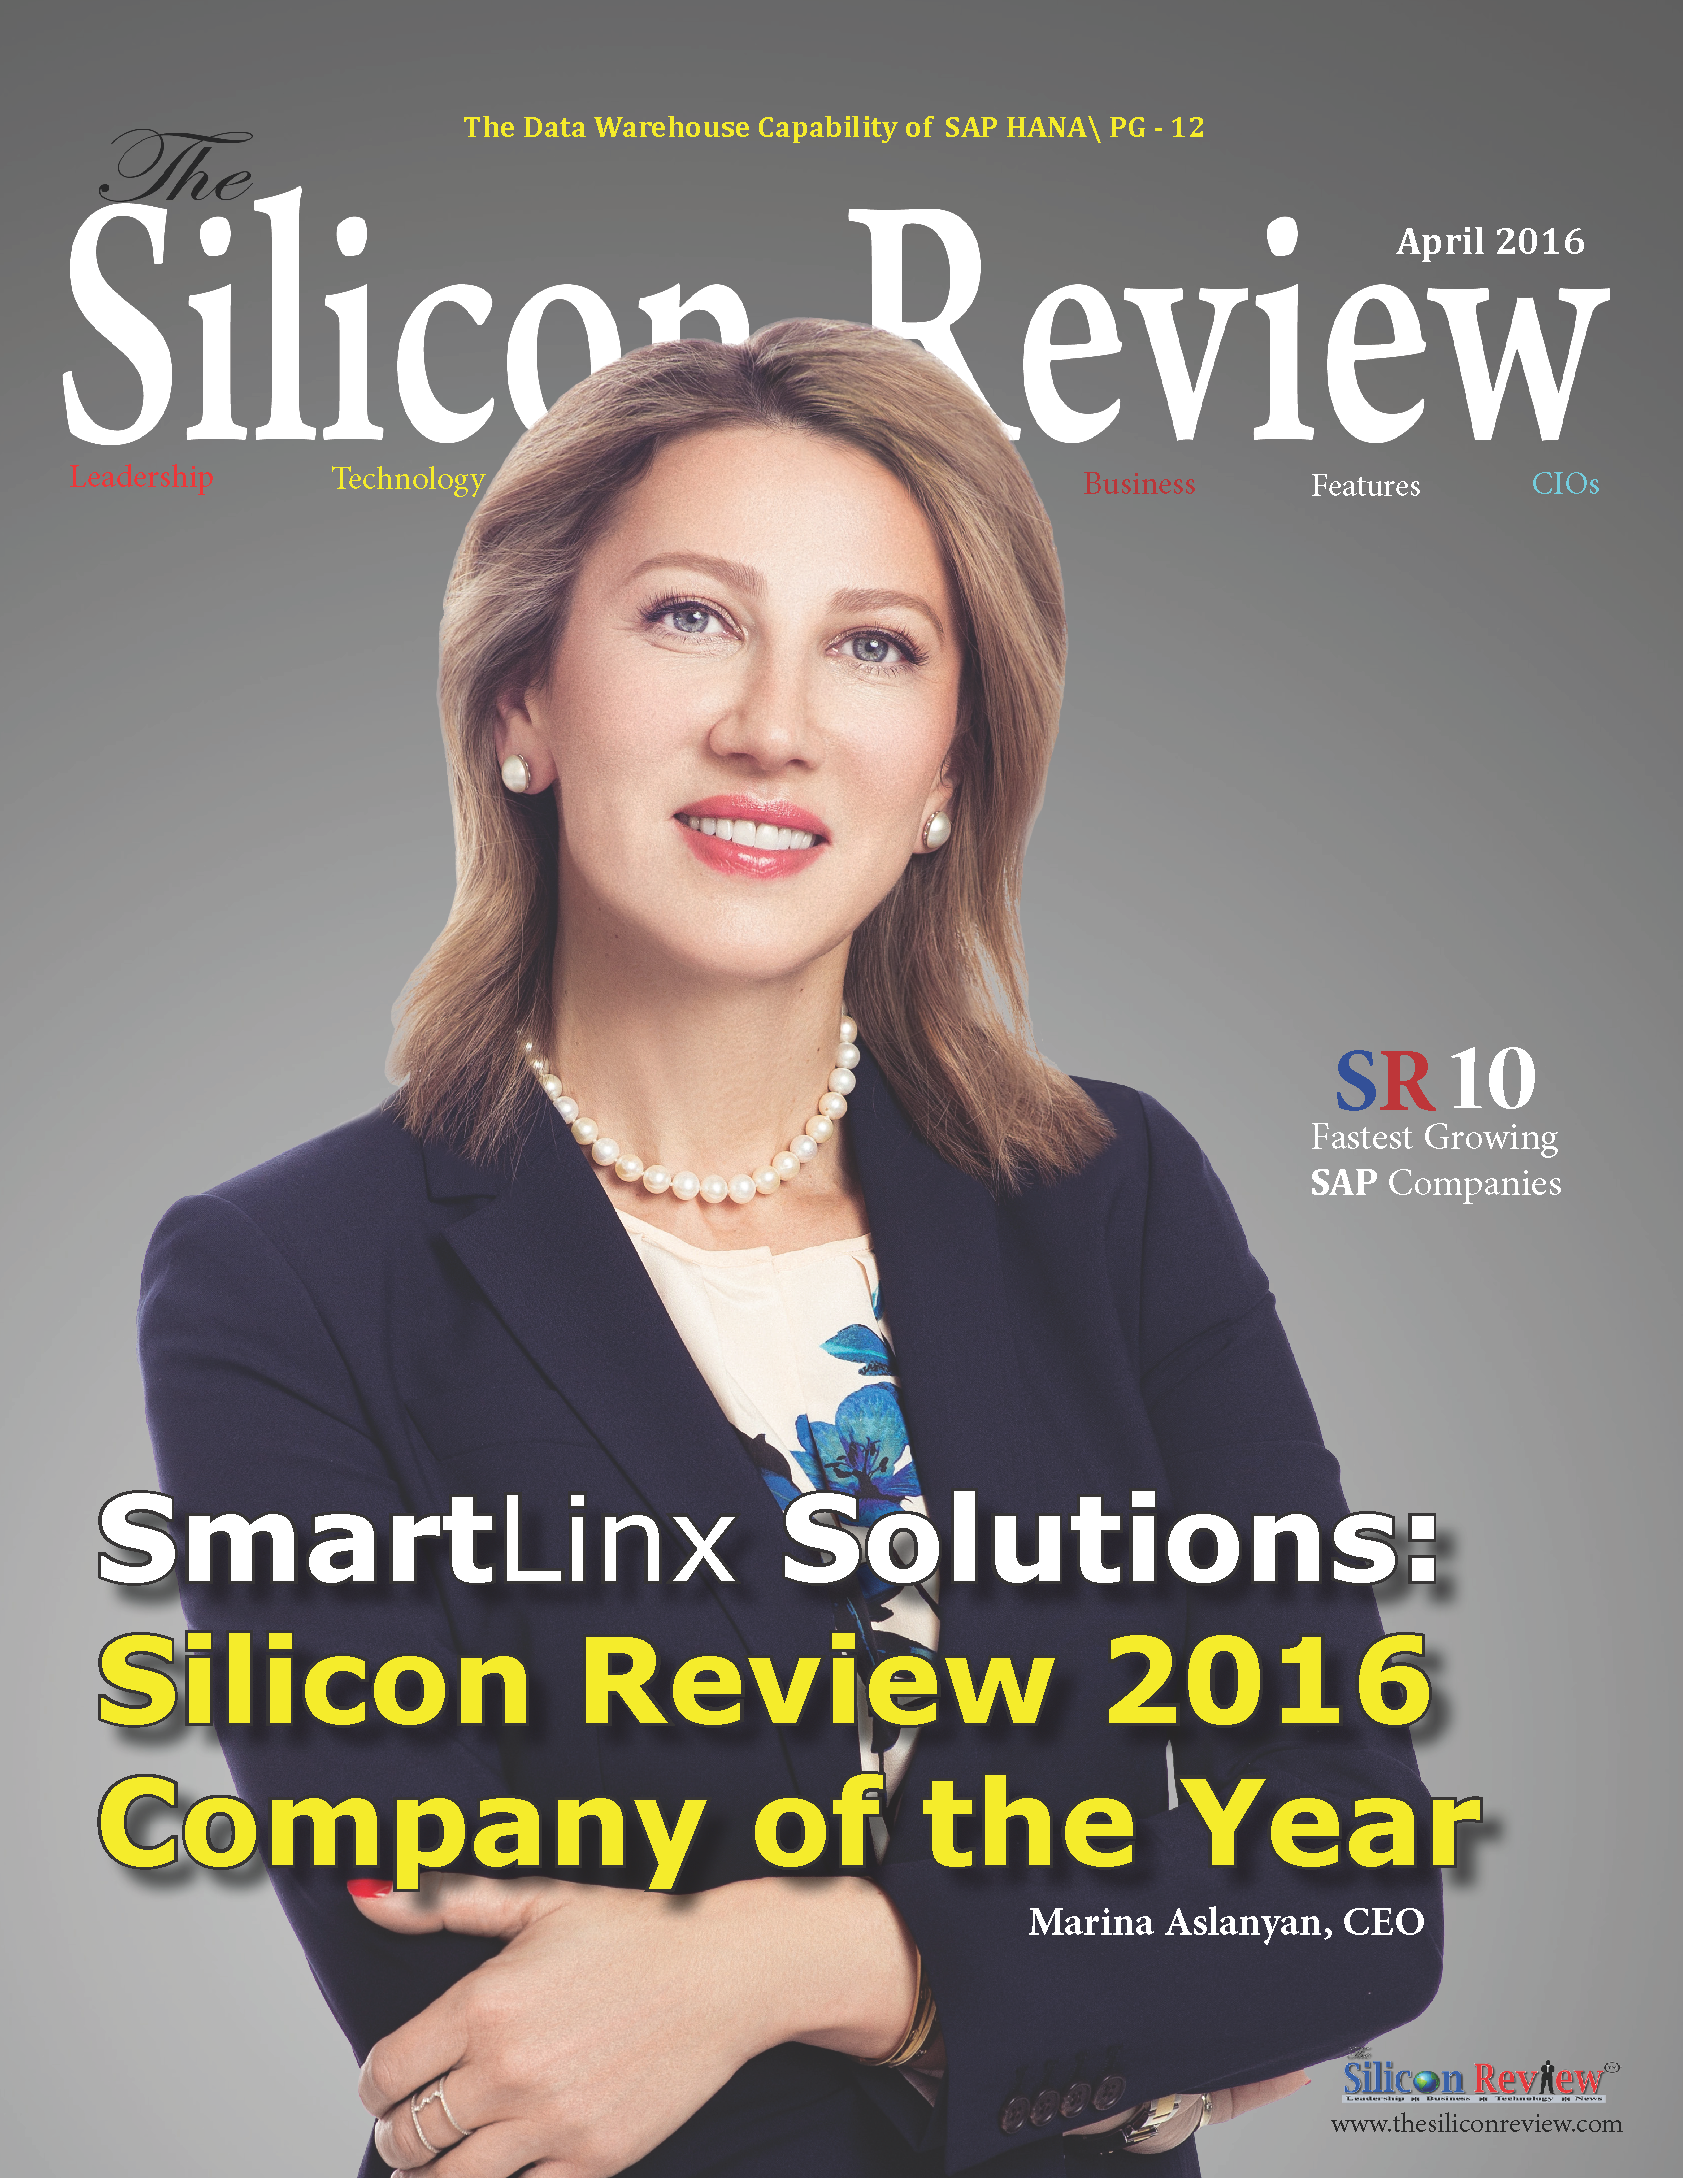 SmartLinx Solutions Named 2016 Company of the Year by The